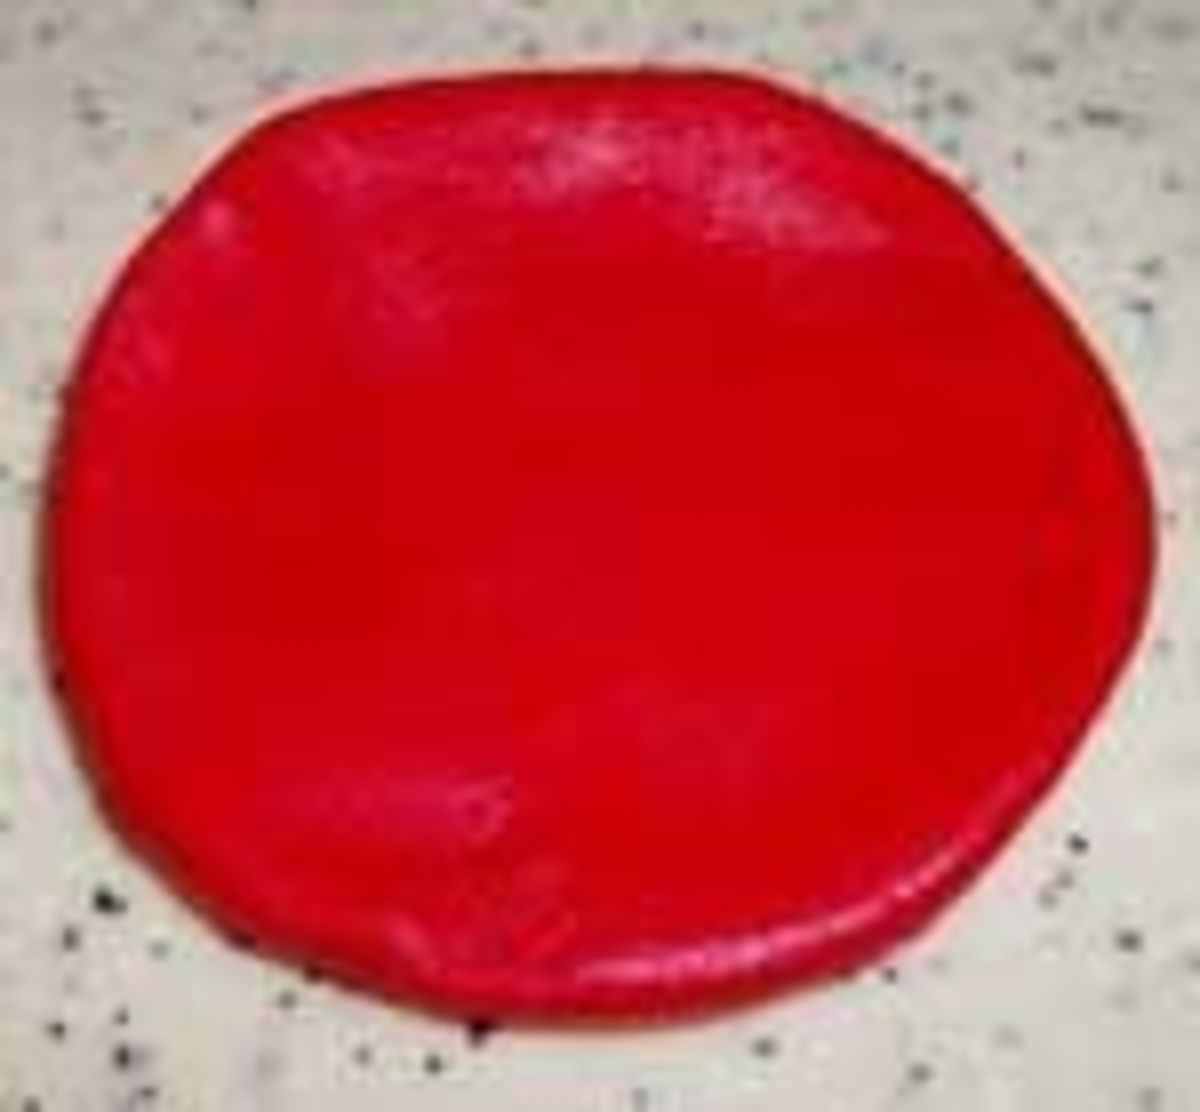 Roll out a ball of red fondant slightly larger than the ball of off-white fondant for the gills and flatten it down into a round.